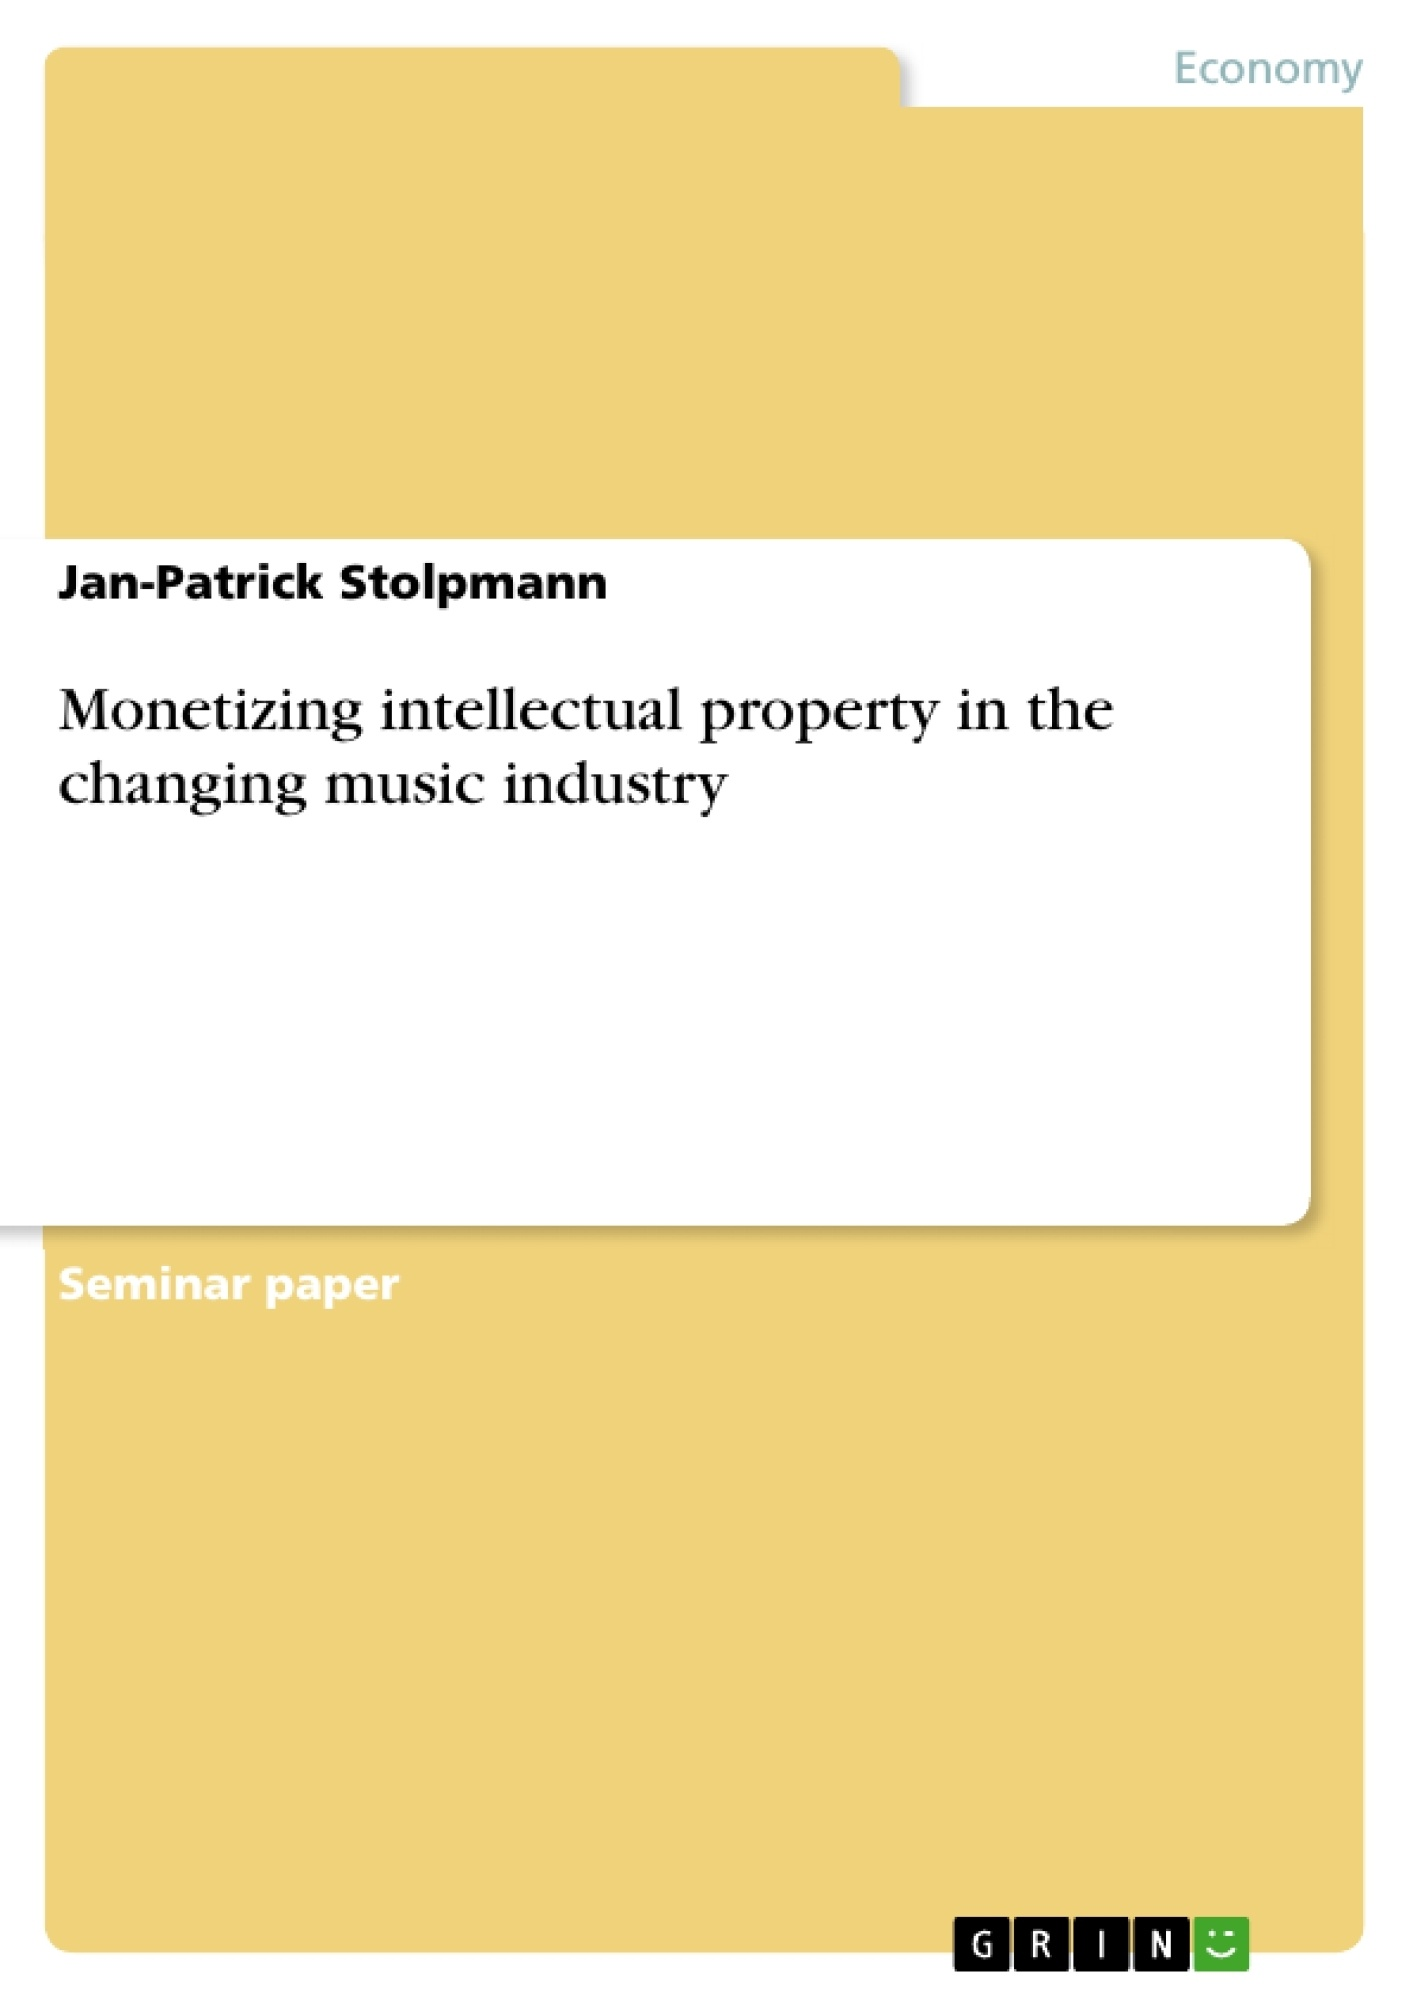 Title: Monetizing intellectual property in the changing music industry